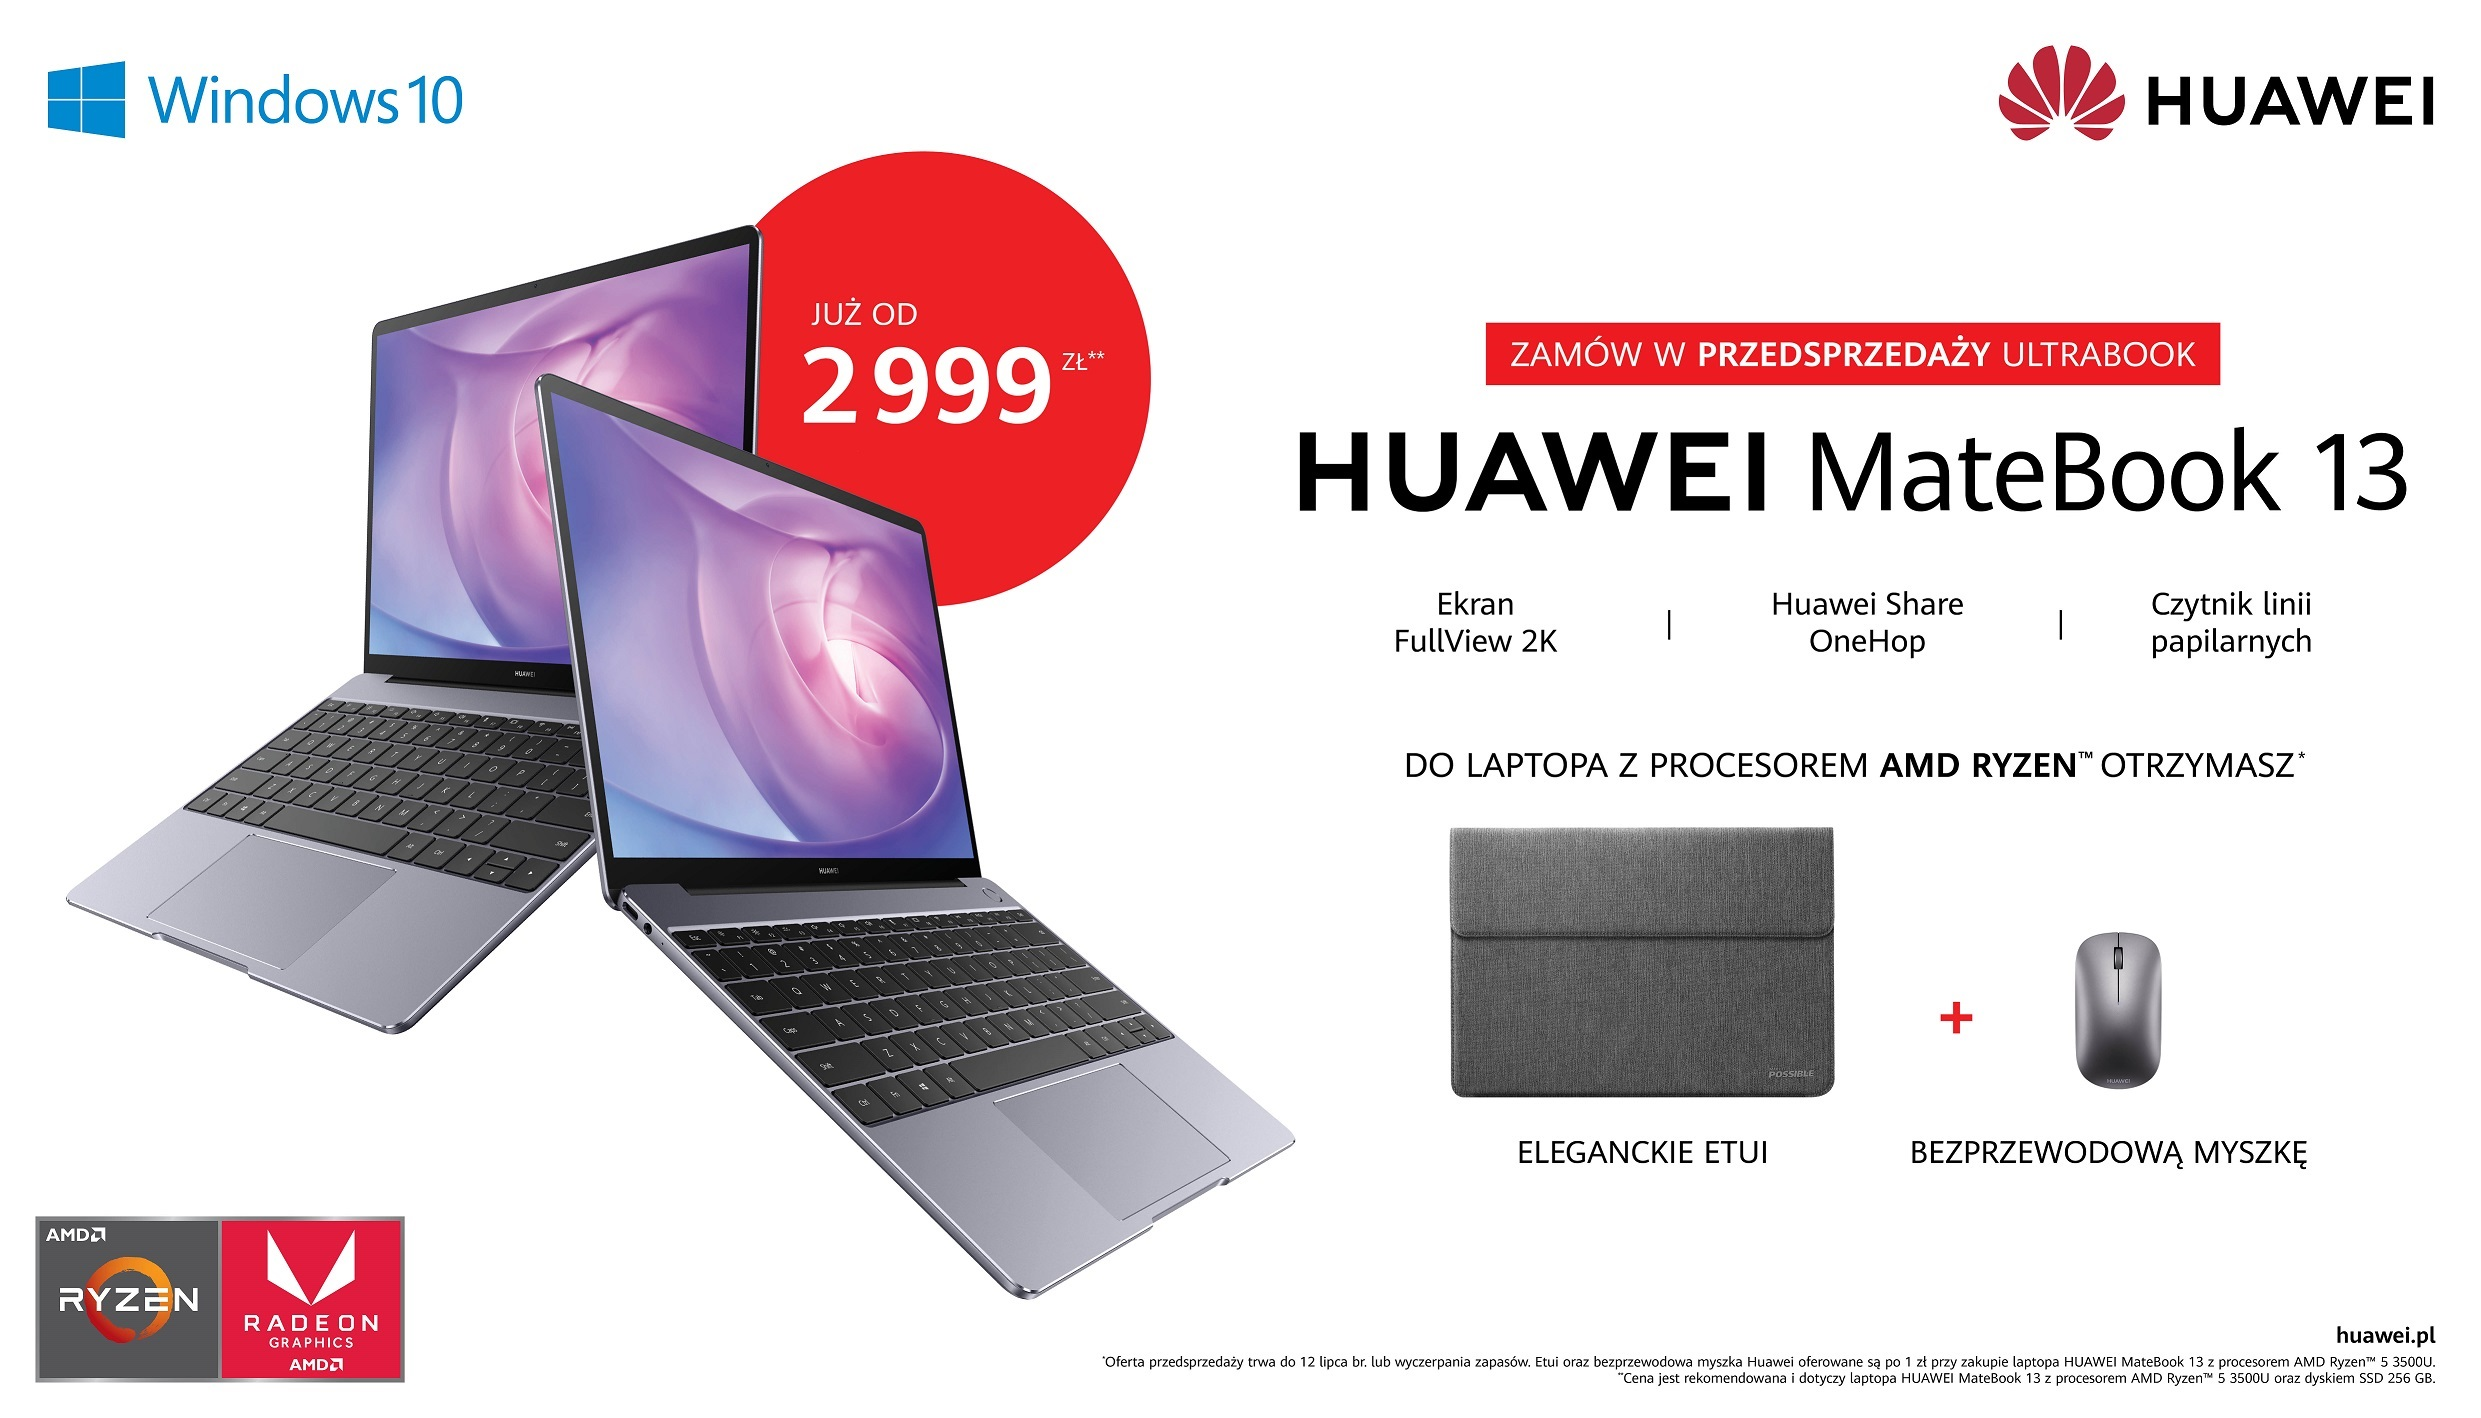 Huawei MateBook 13 AMD Ryzen 5 3500U laptop